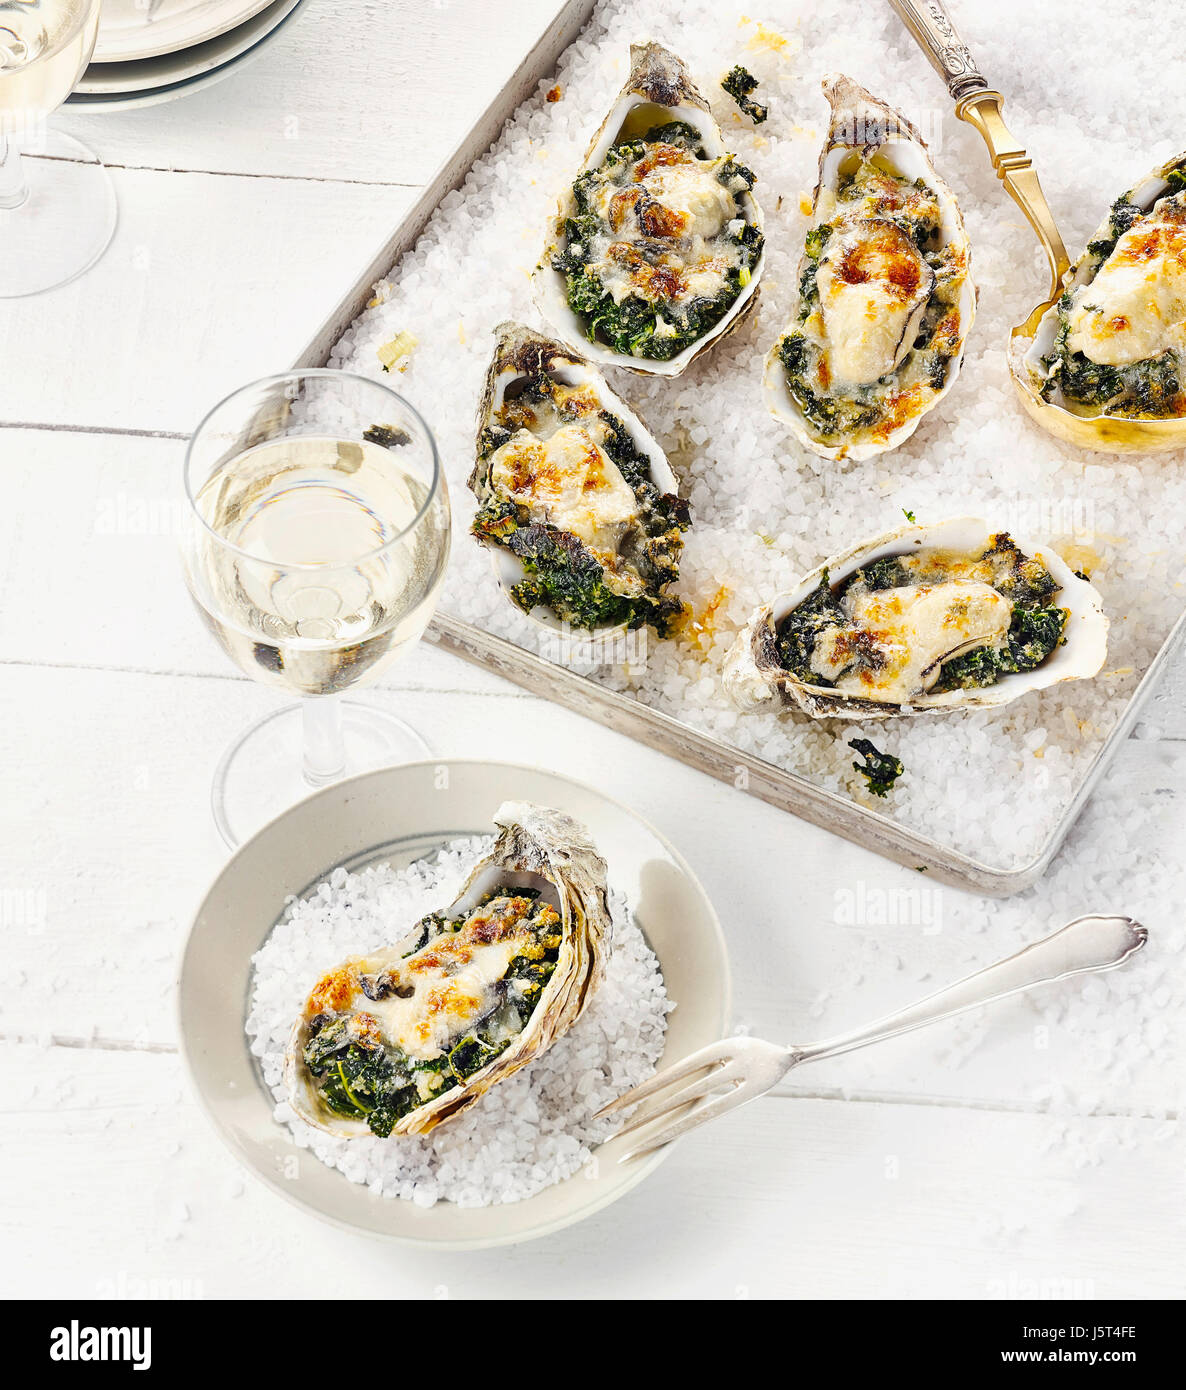 Gratinated oysters with kale filling - Stock Image